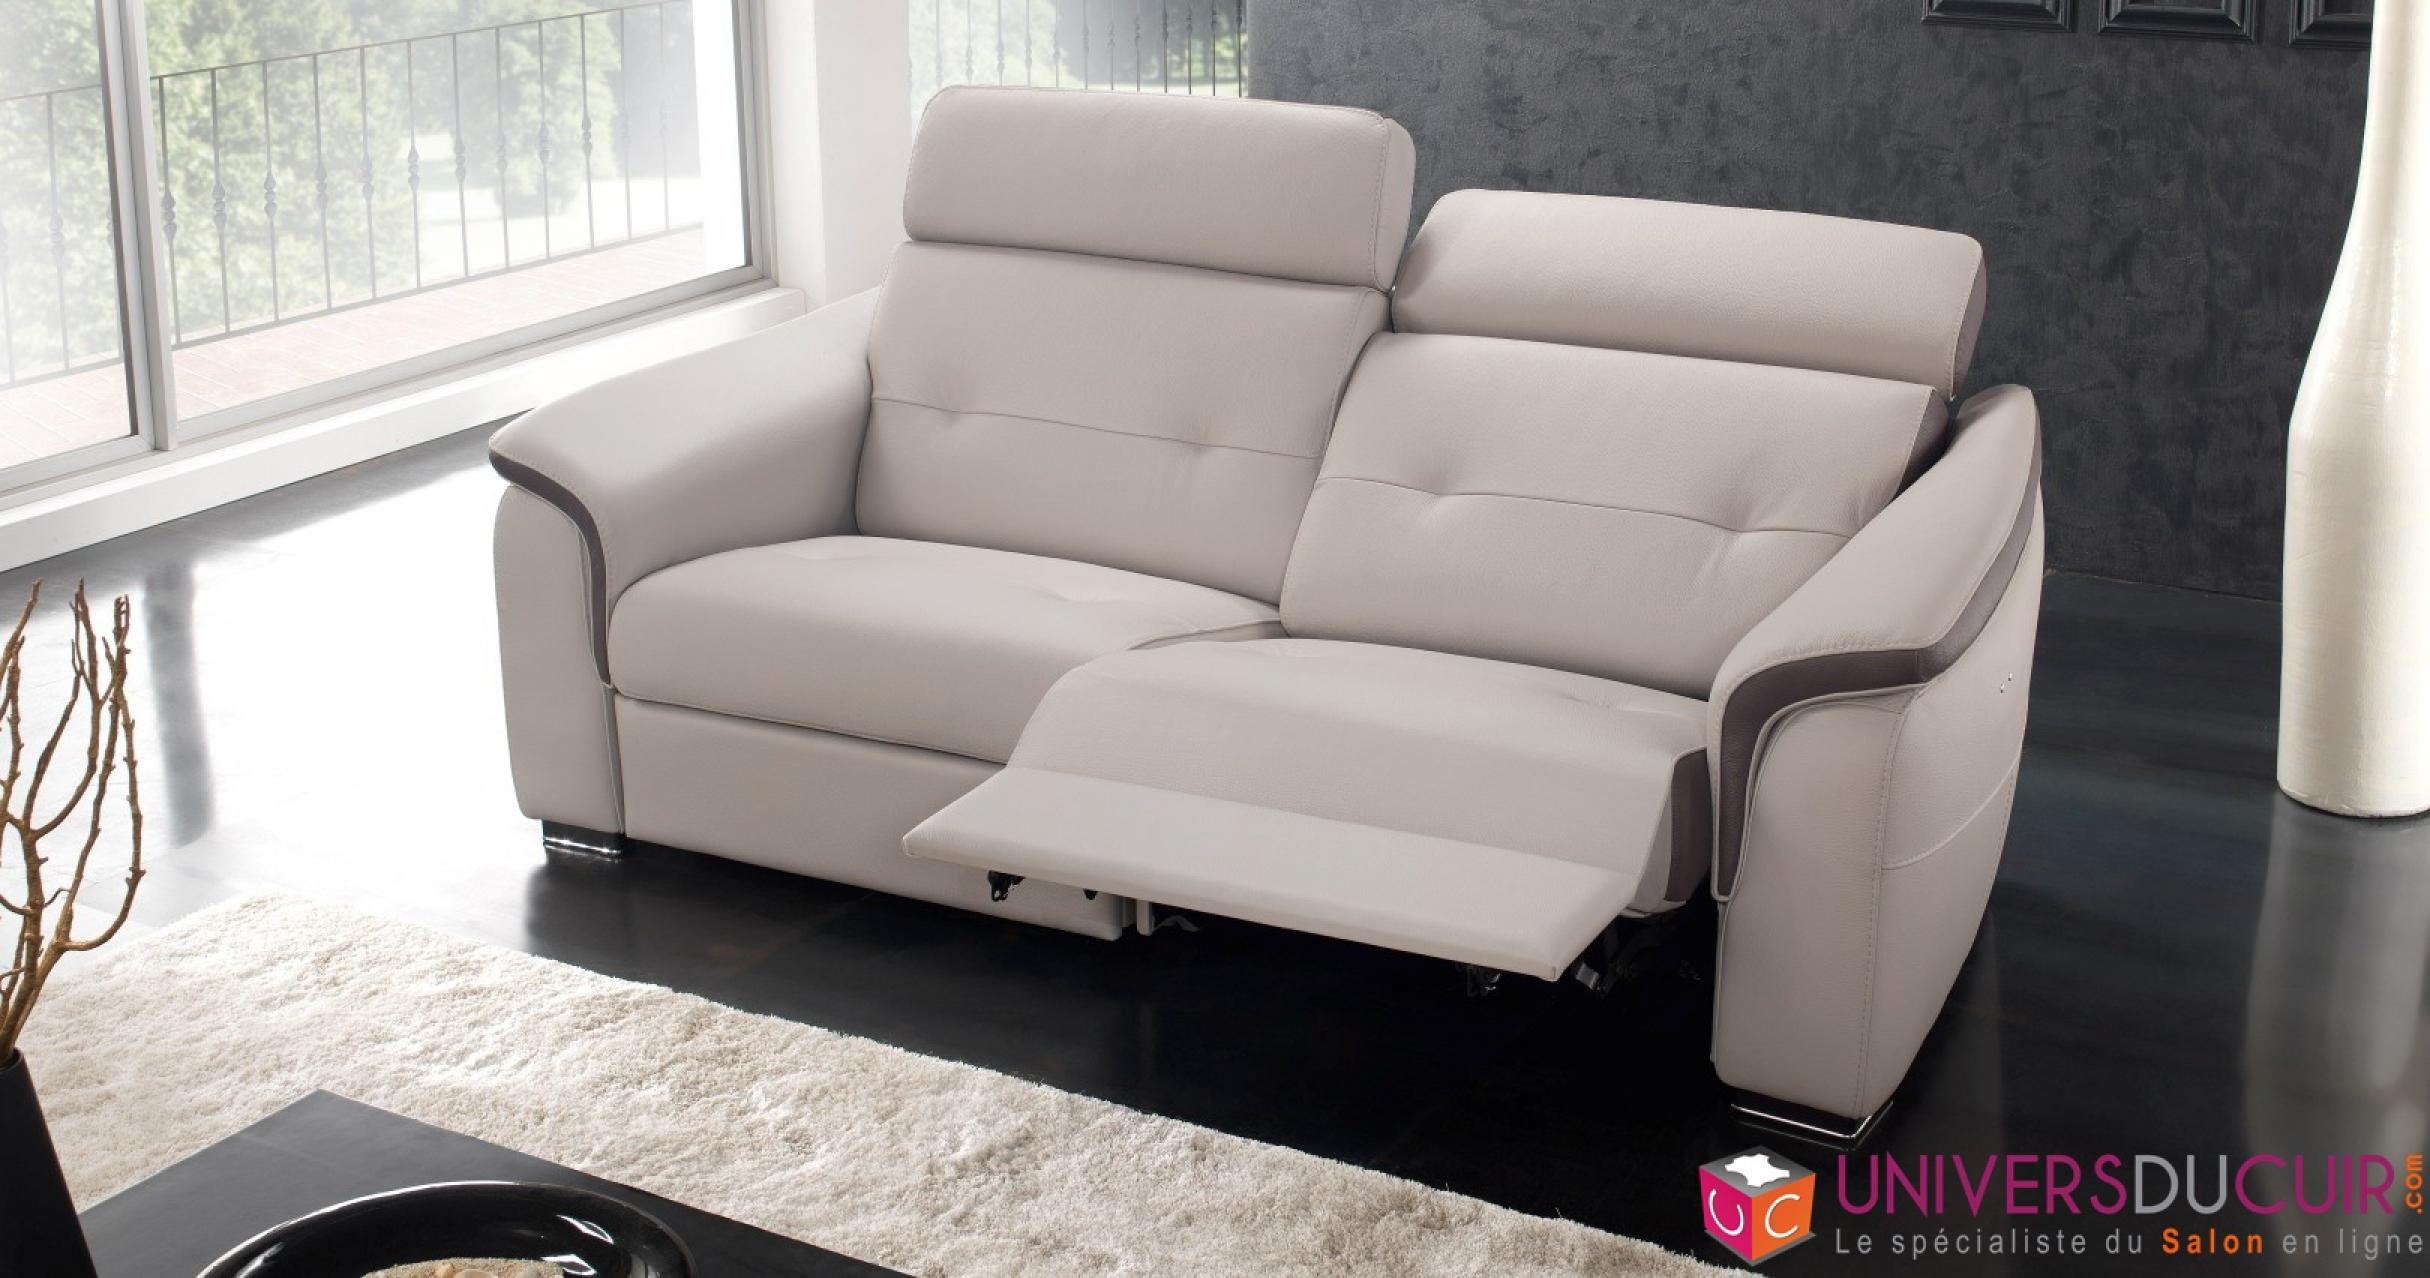 cuir center pau view images cuir center canape canap d angle convertible cuir with cuir center. Black Bedroom Furniture Sets. Home Design Ideas